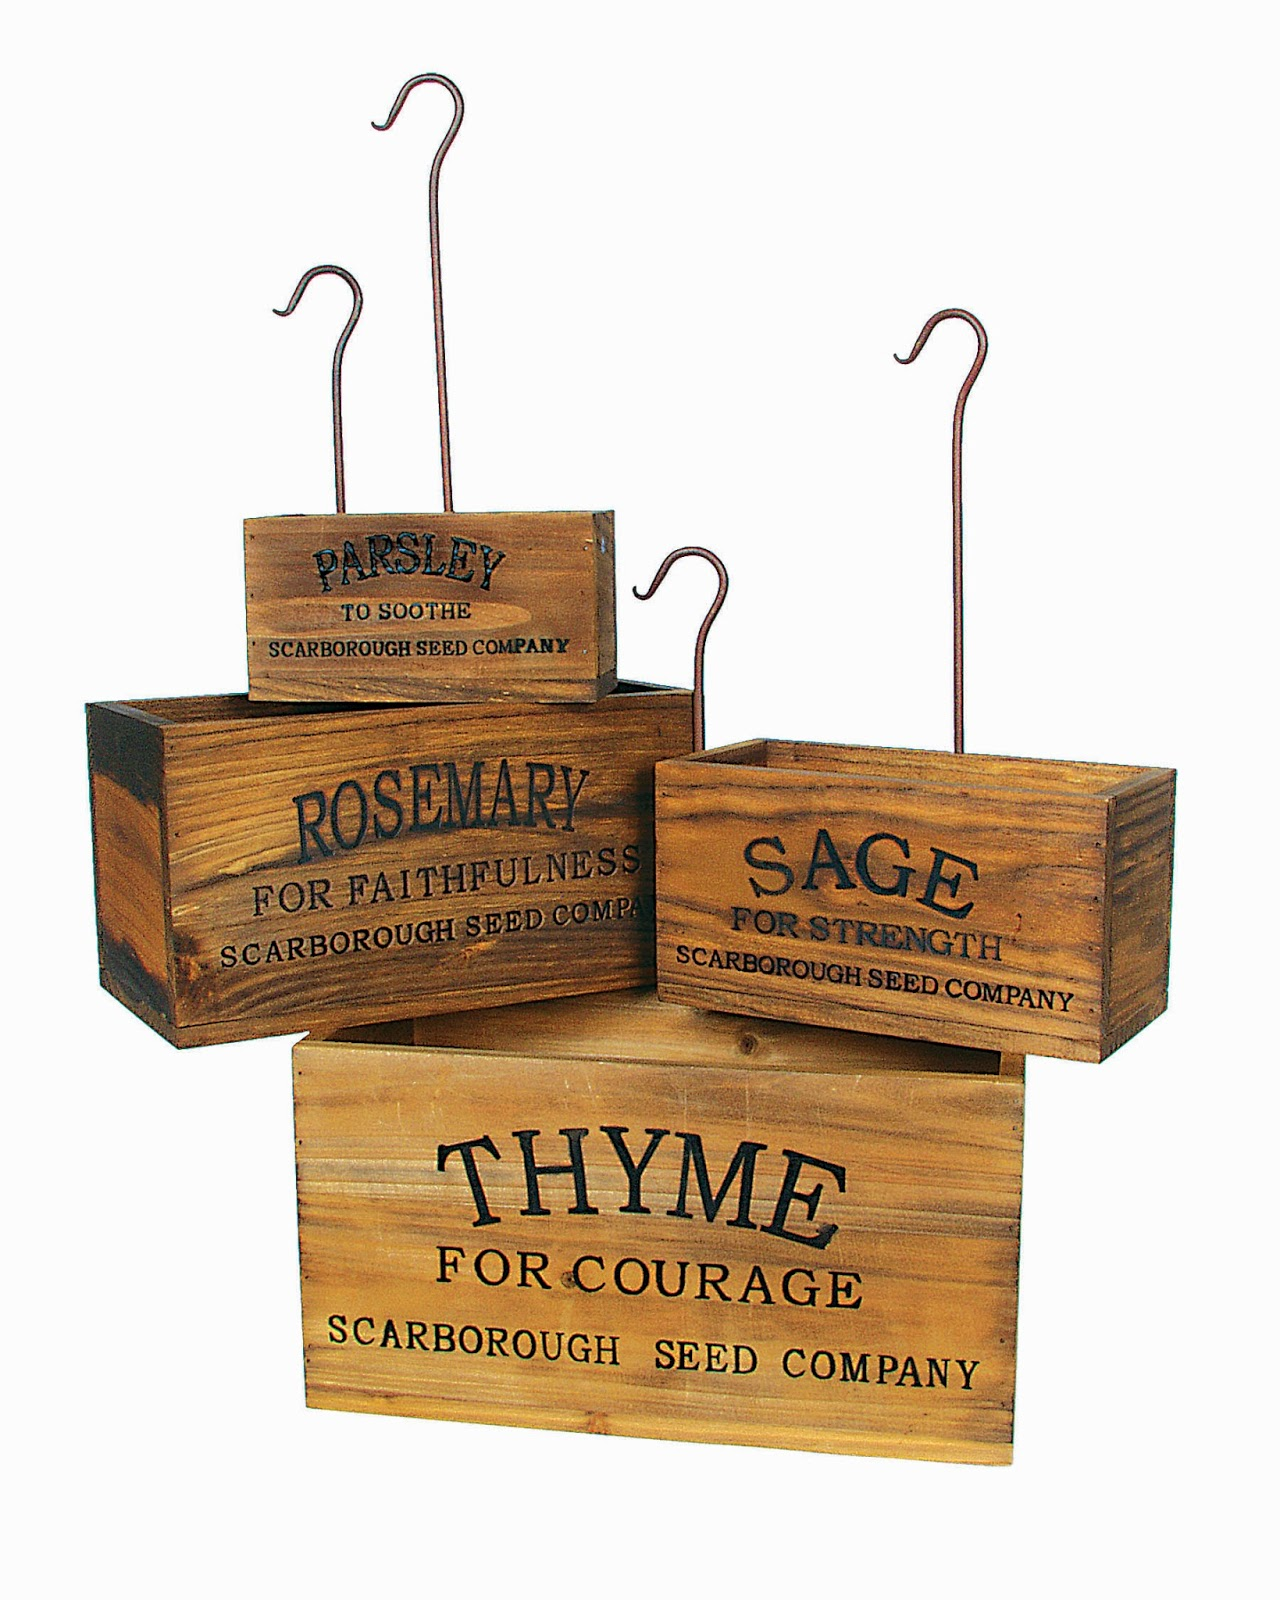 Herb Planter Box Farmhouse Musings Vintage Style Nesting Herb Crates